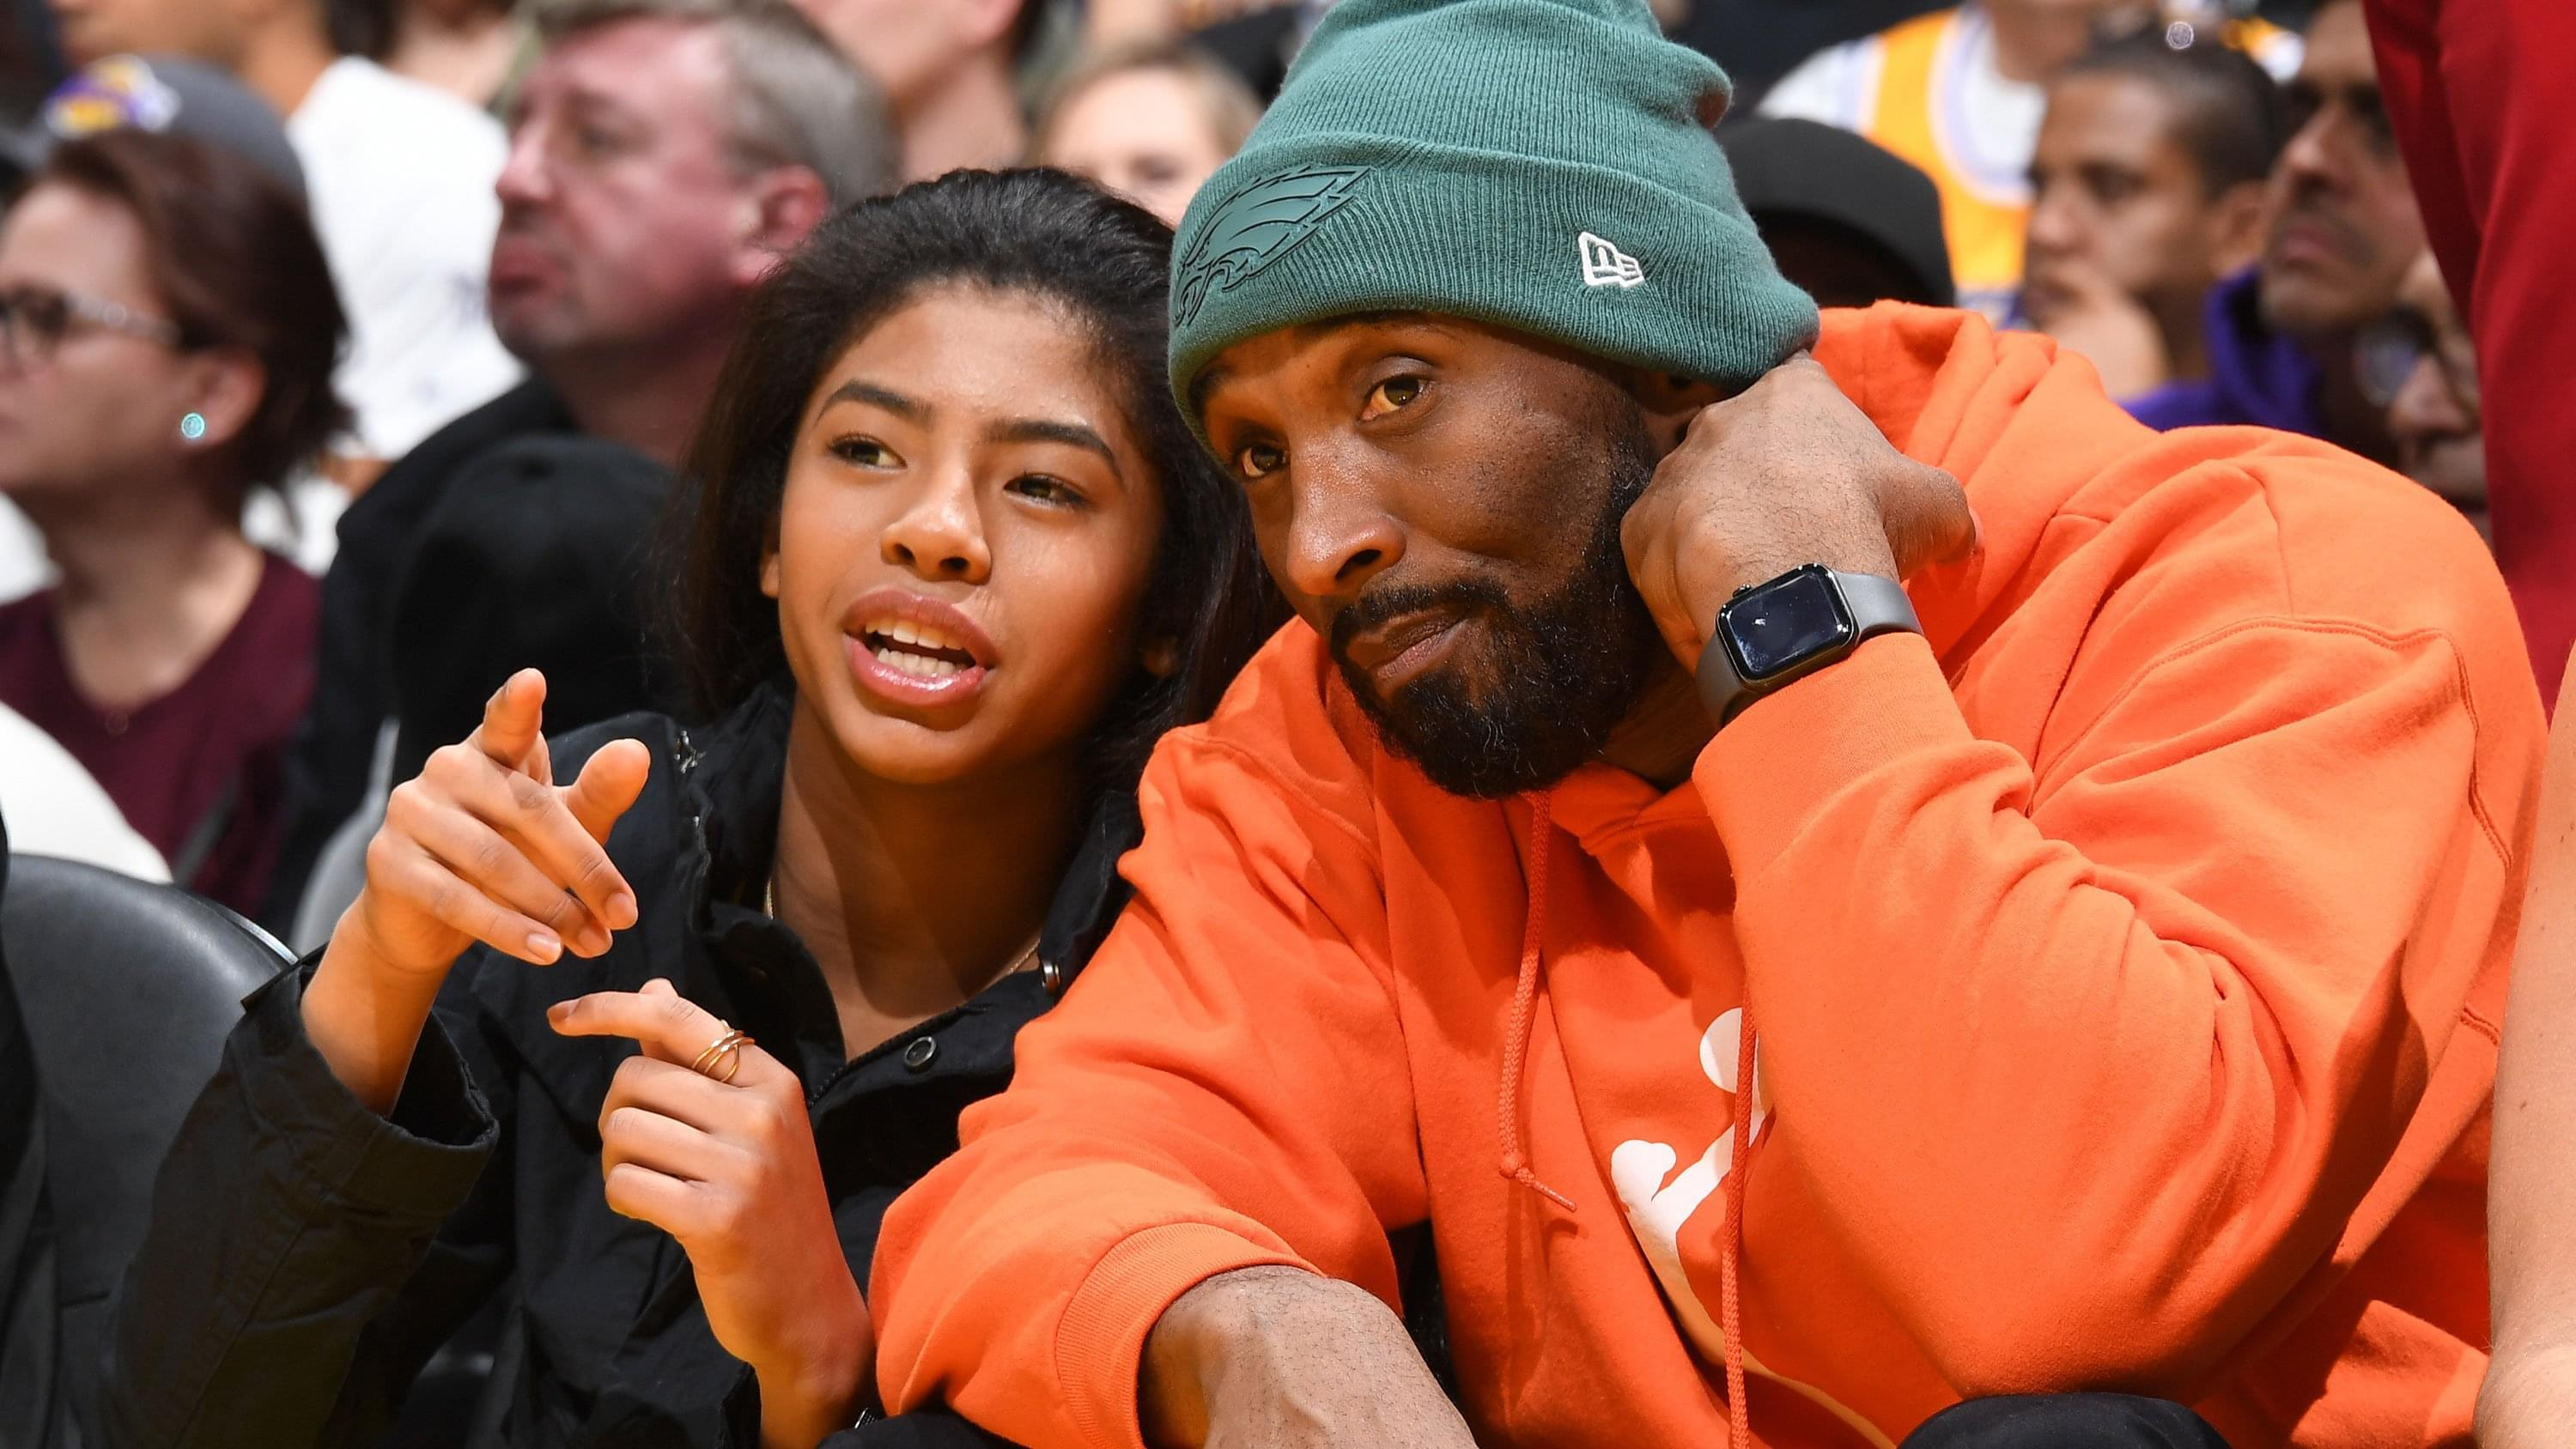 Kobe Bryant and his daughter, Gianna, killed in a helicopter crash in California